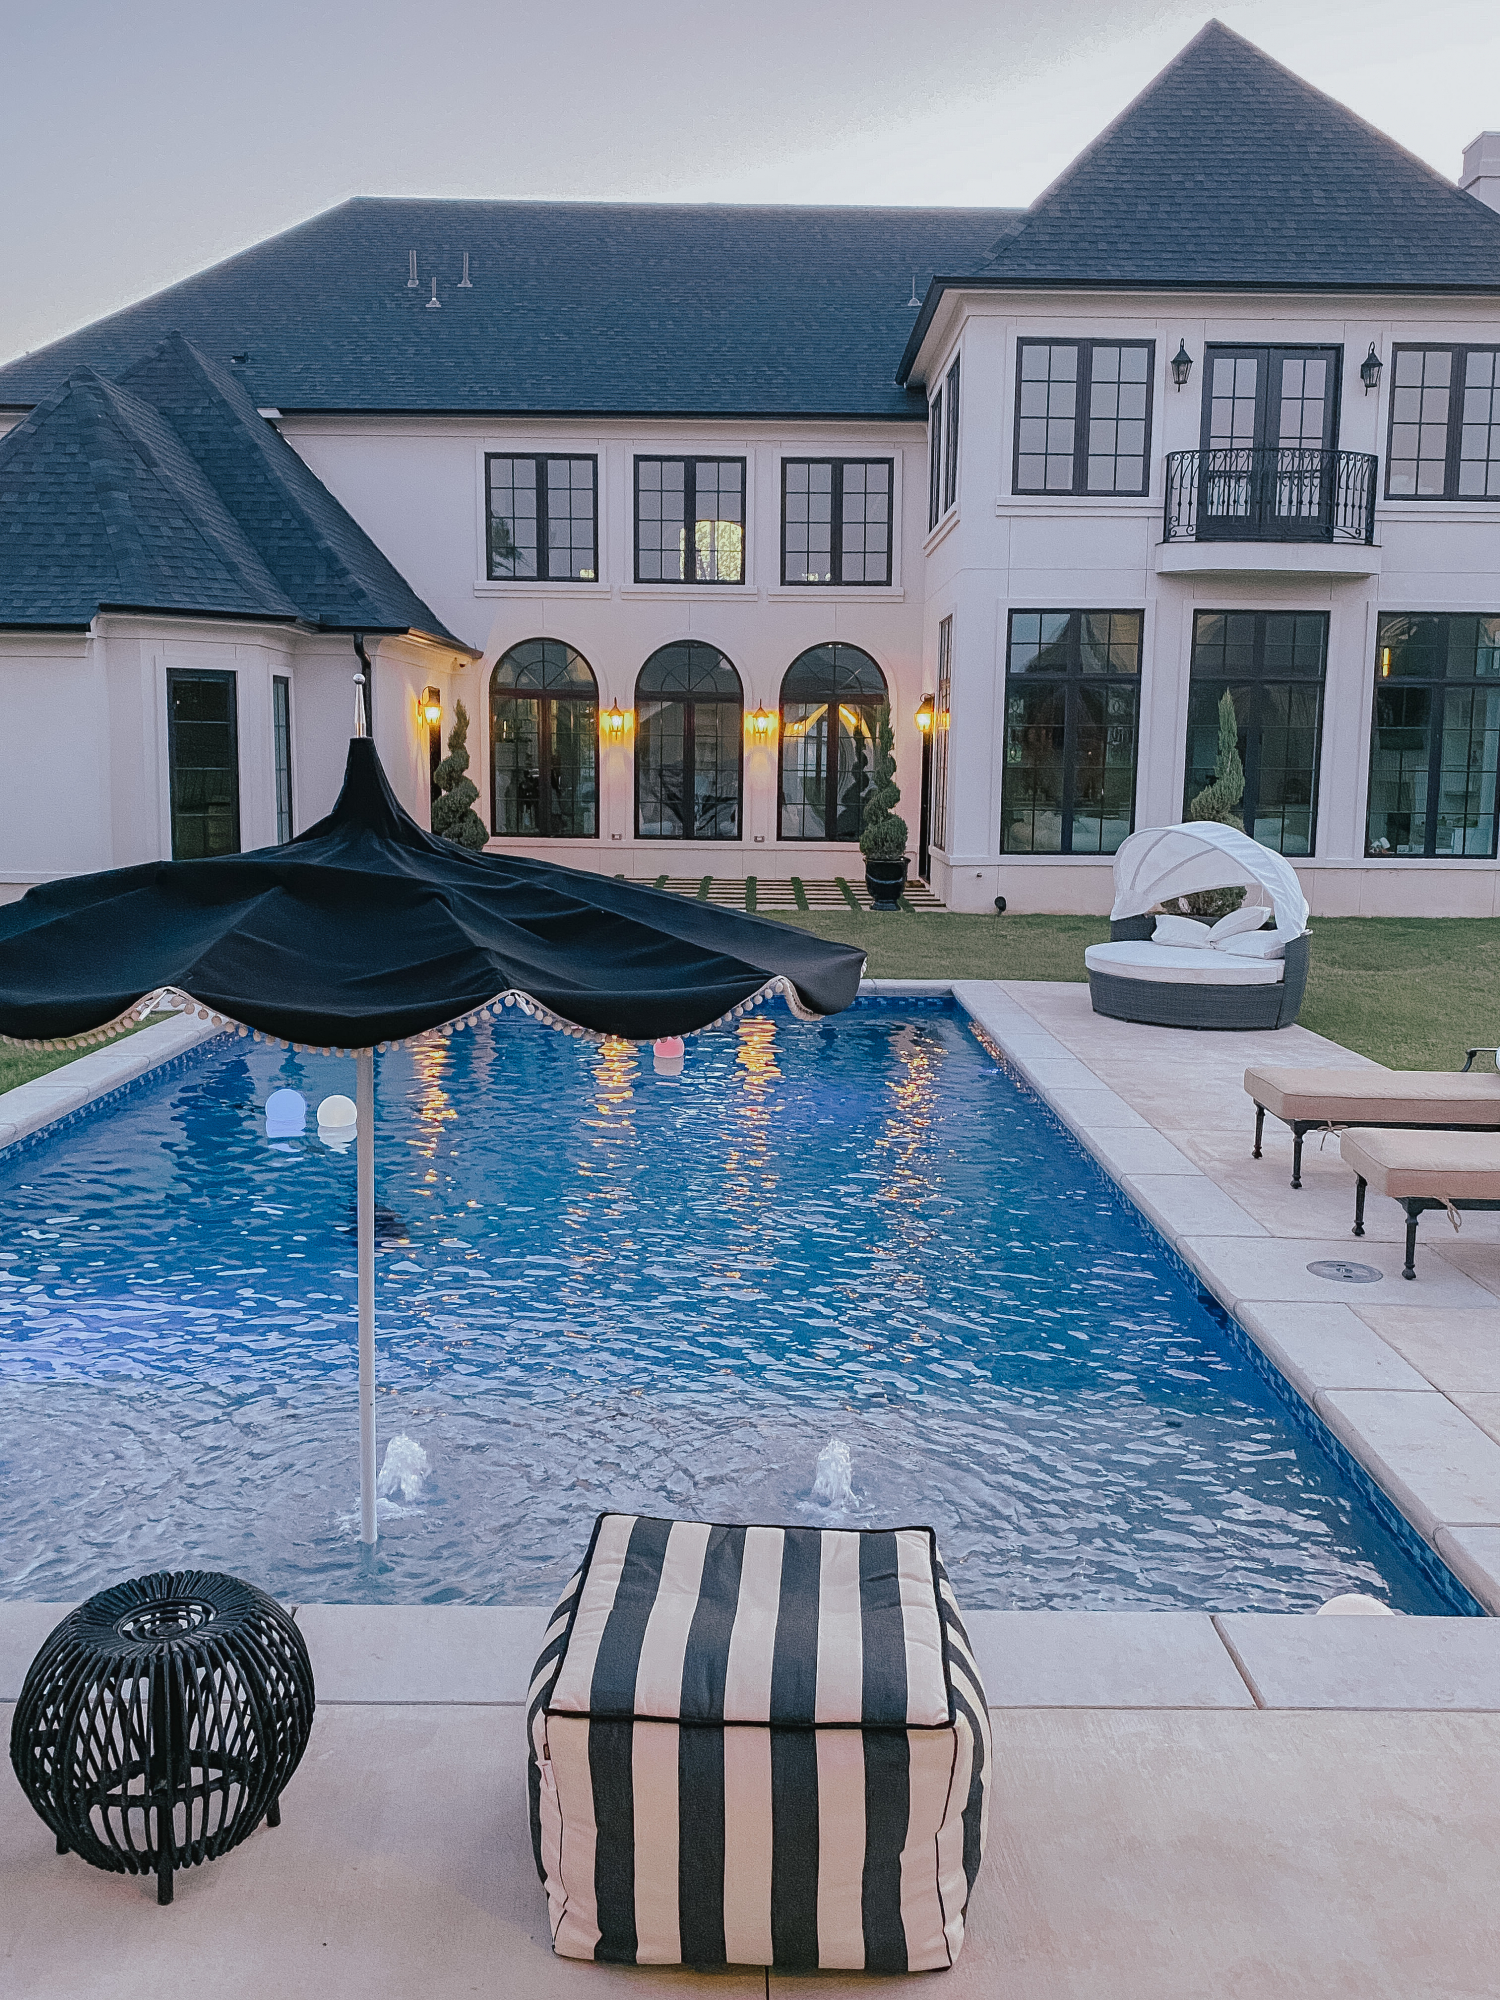 Backyard Decor by popular US life and style blog, The Sweetest Thing: image of a backyard pool, black and white stripe pouf, floating pool orbs, black umbrella with white pom-pom fringe, black and white strip lumbar pillows, and lounge chairs with tan cushions.